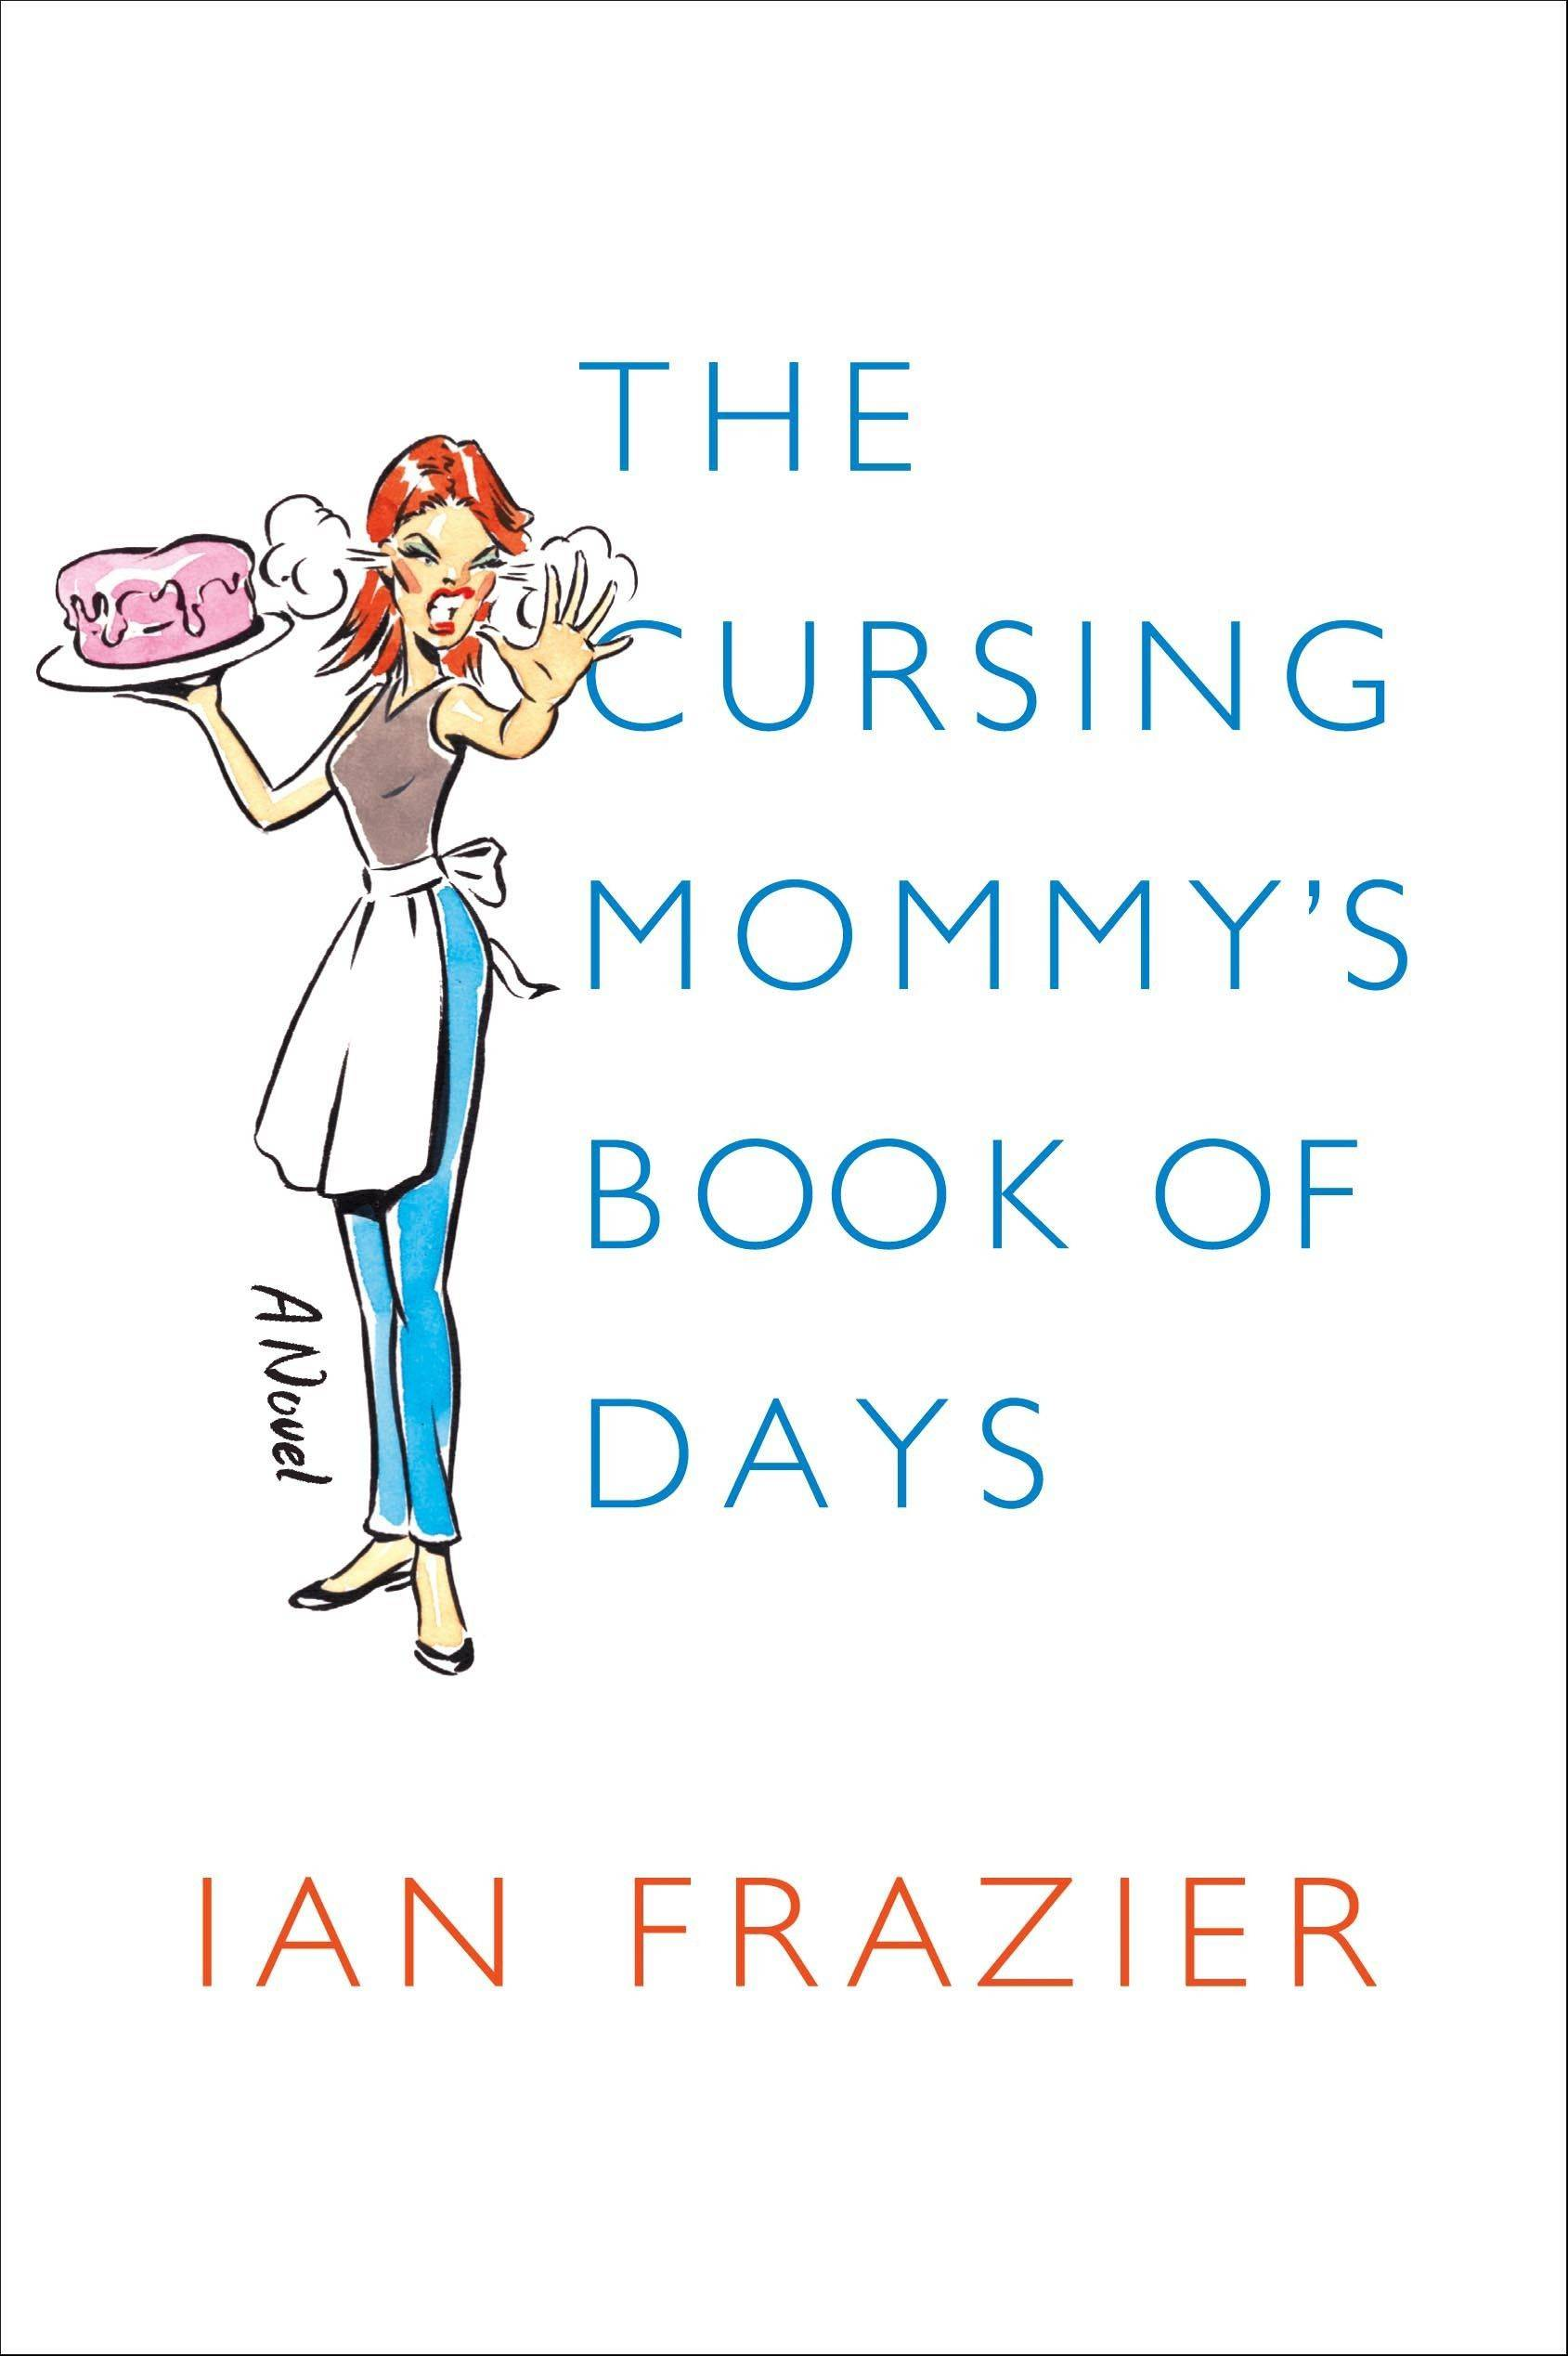 �The Cursing Mommy�s Book of Days� by Ian Frazier